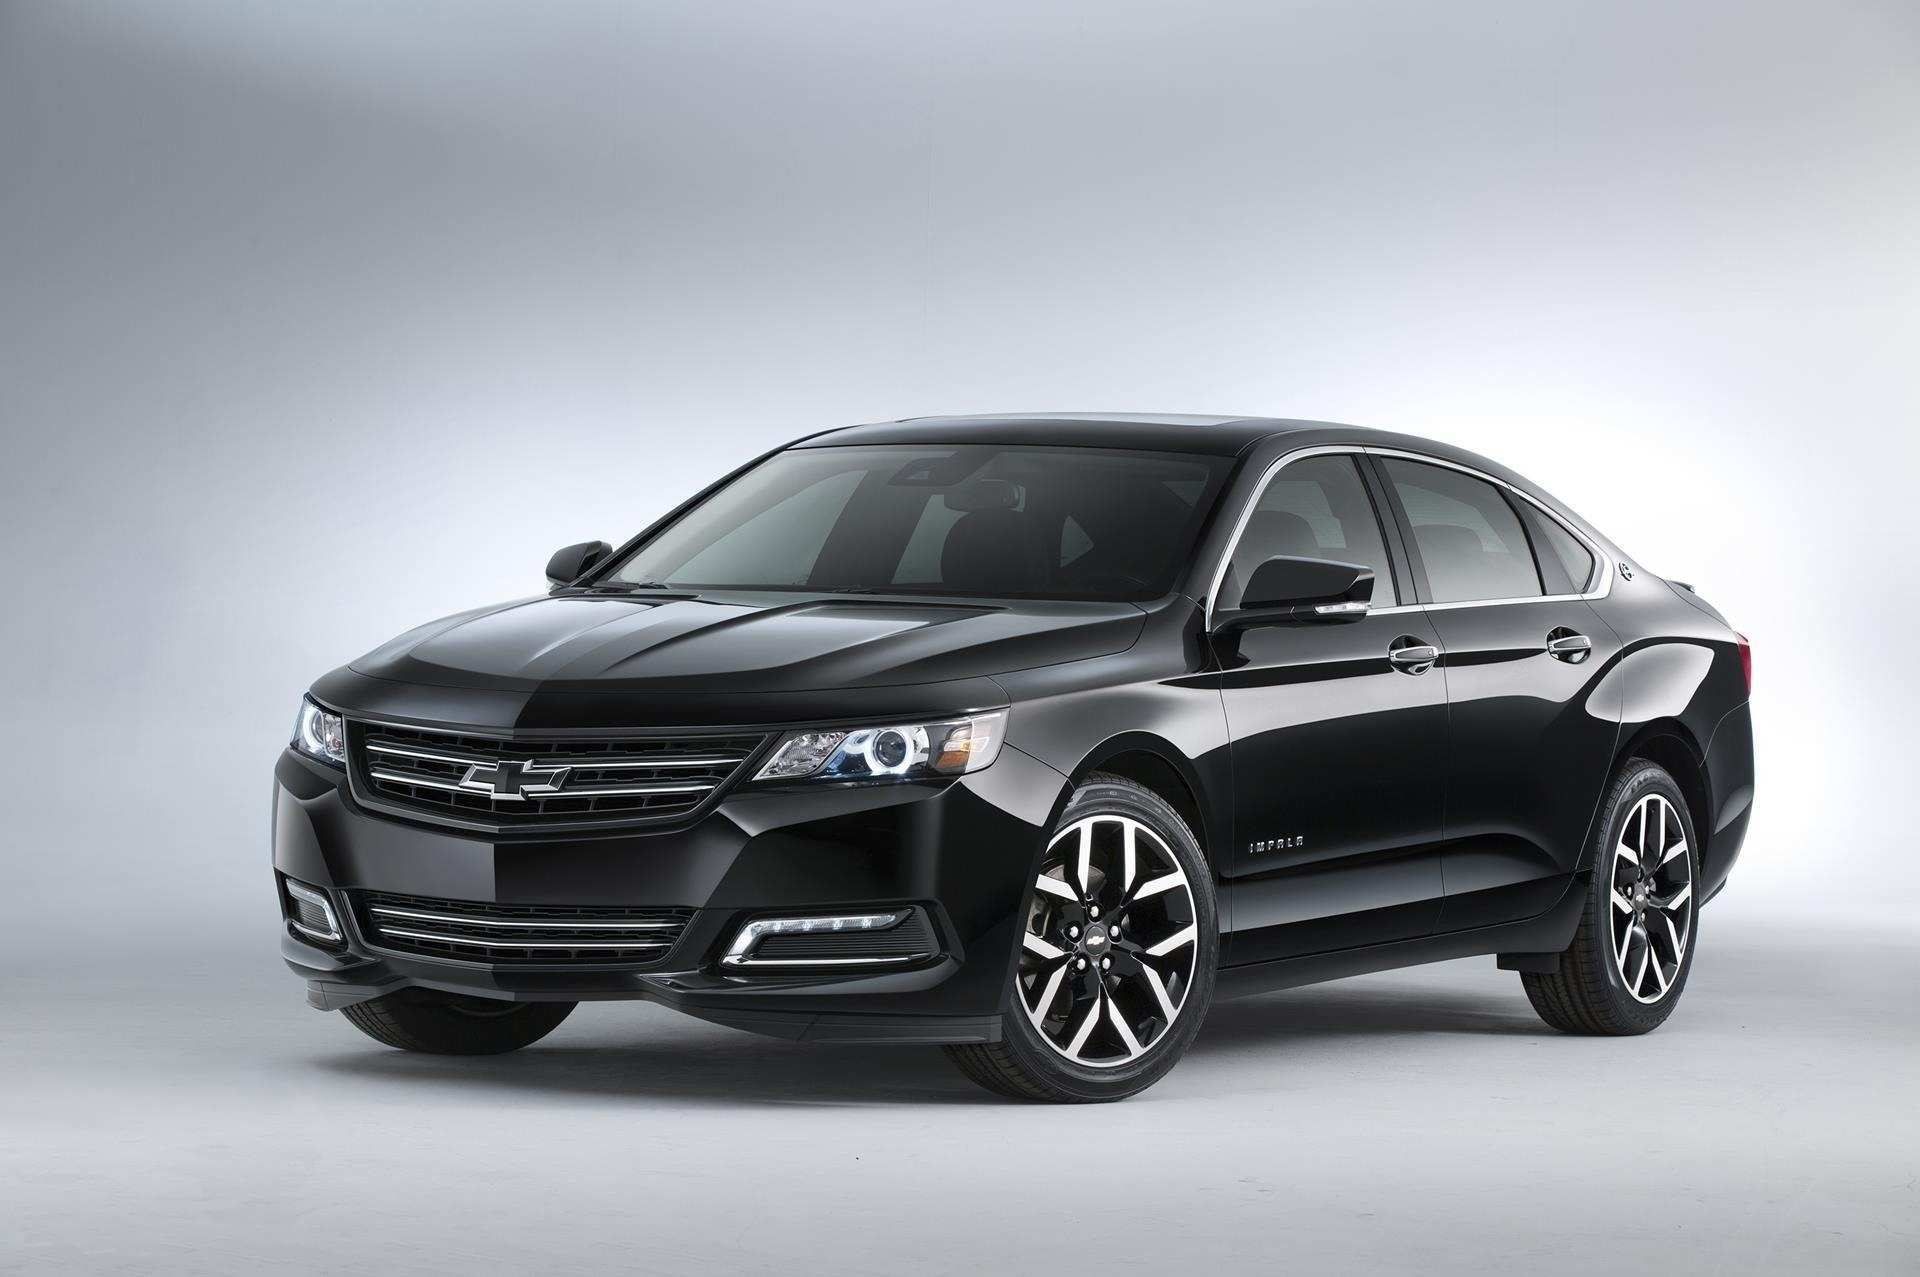 34 All New 2019 Chevy Impala Ss Ltz Release Date